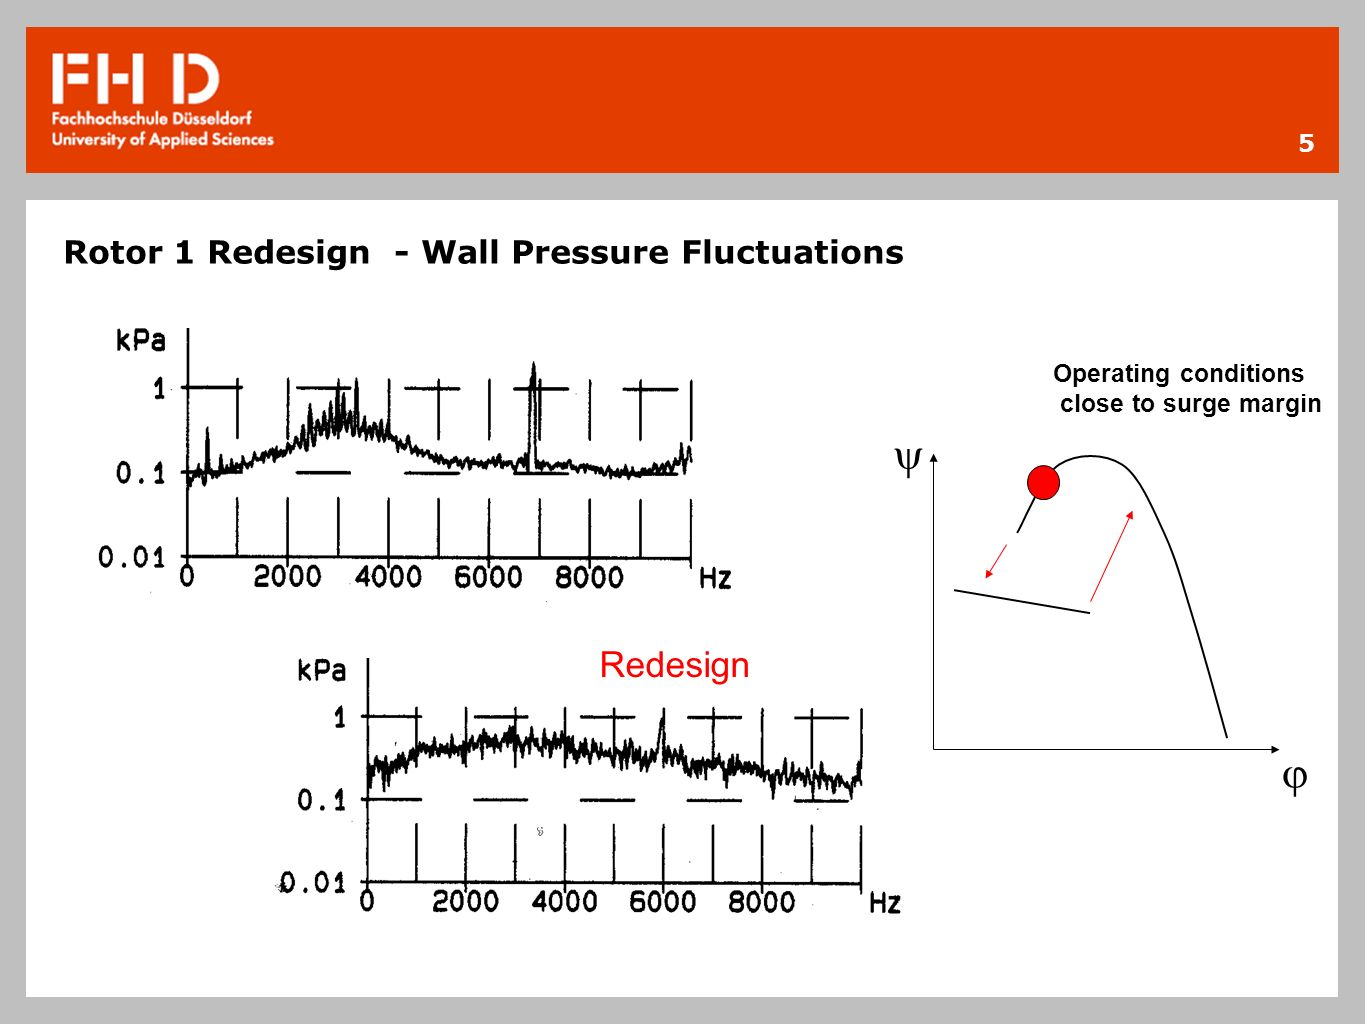 Rotor 1 Redesign - Wall Pressure Fluctuations